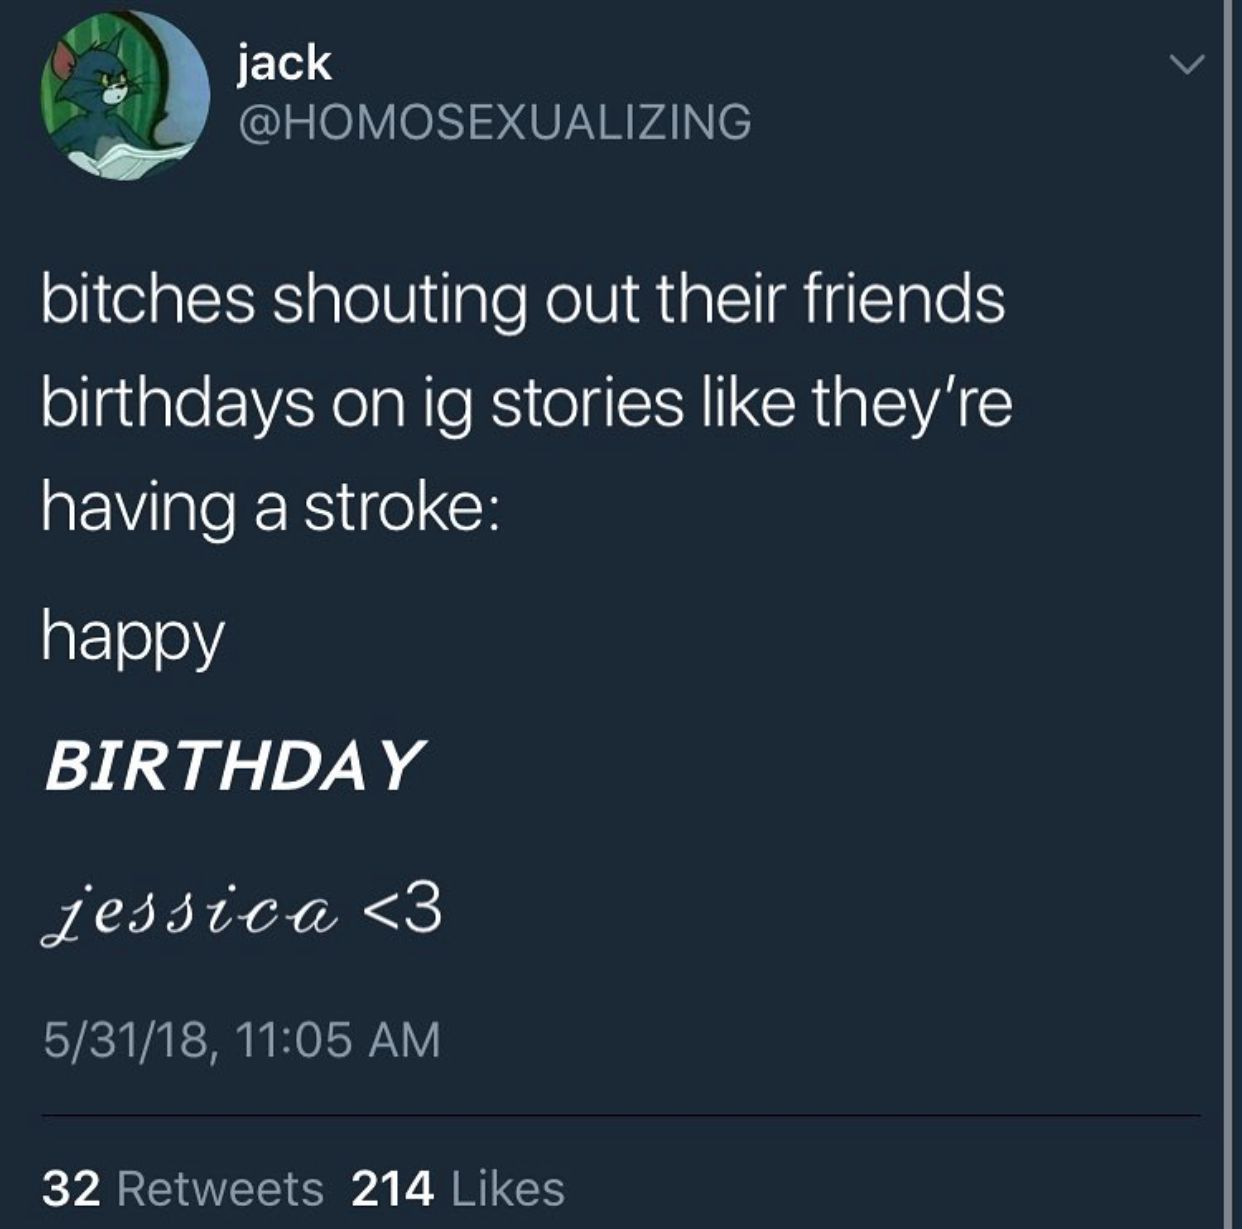 JASONS SPITTING FACTS THOUGH